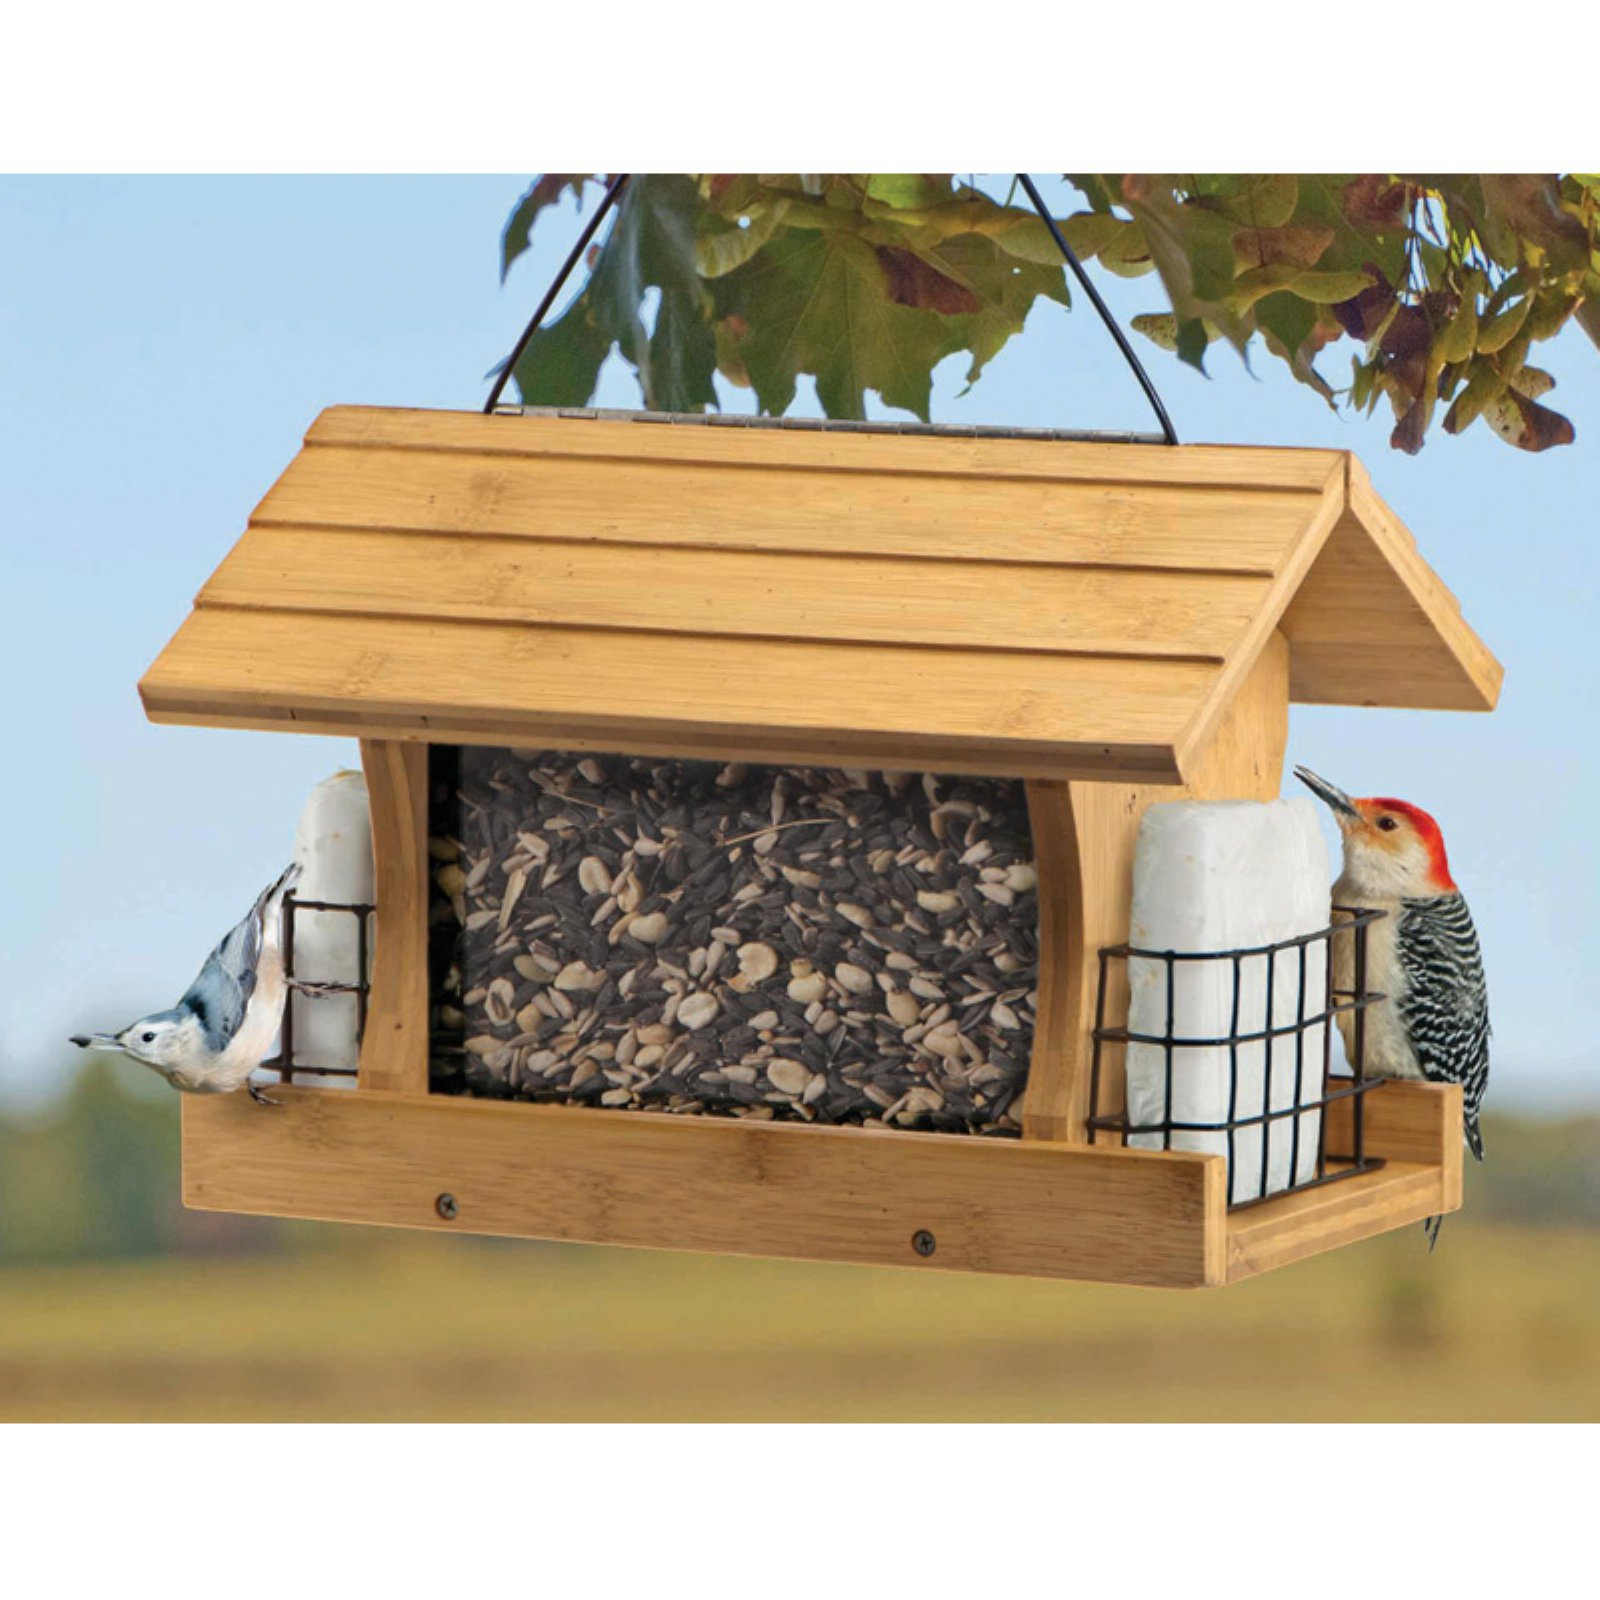 Wood Link Premium Bamboo Ranch Feeder with Suet